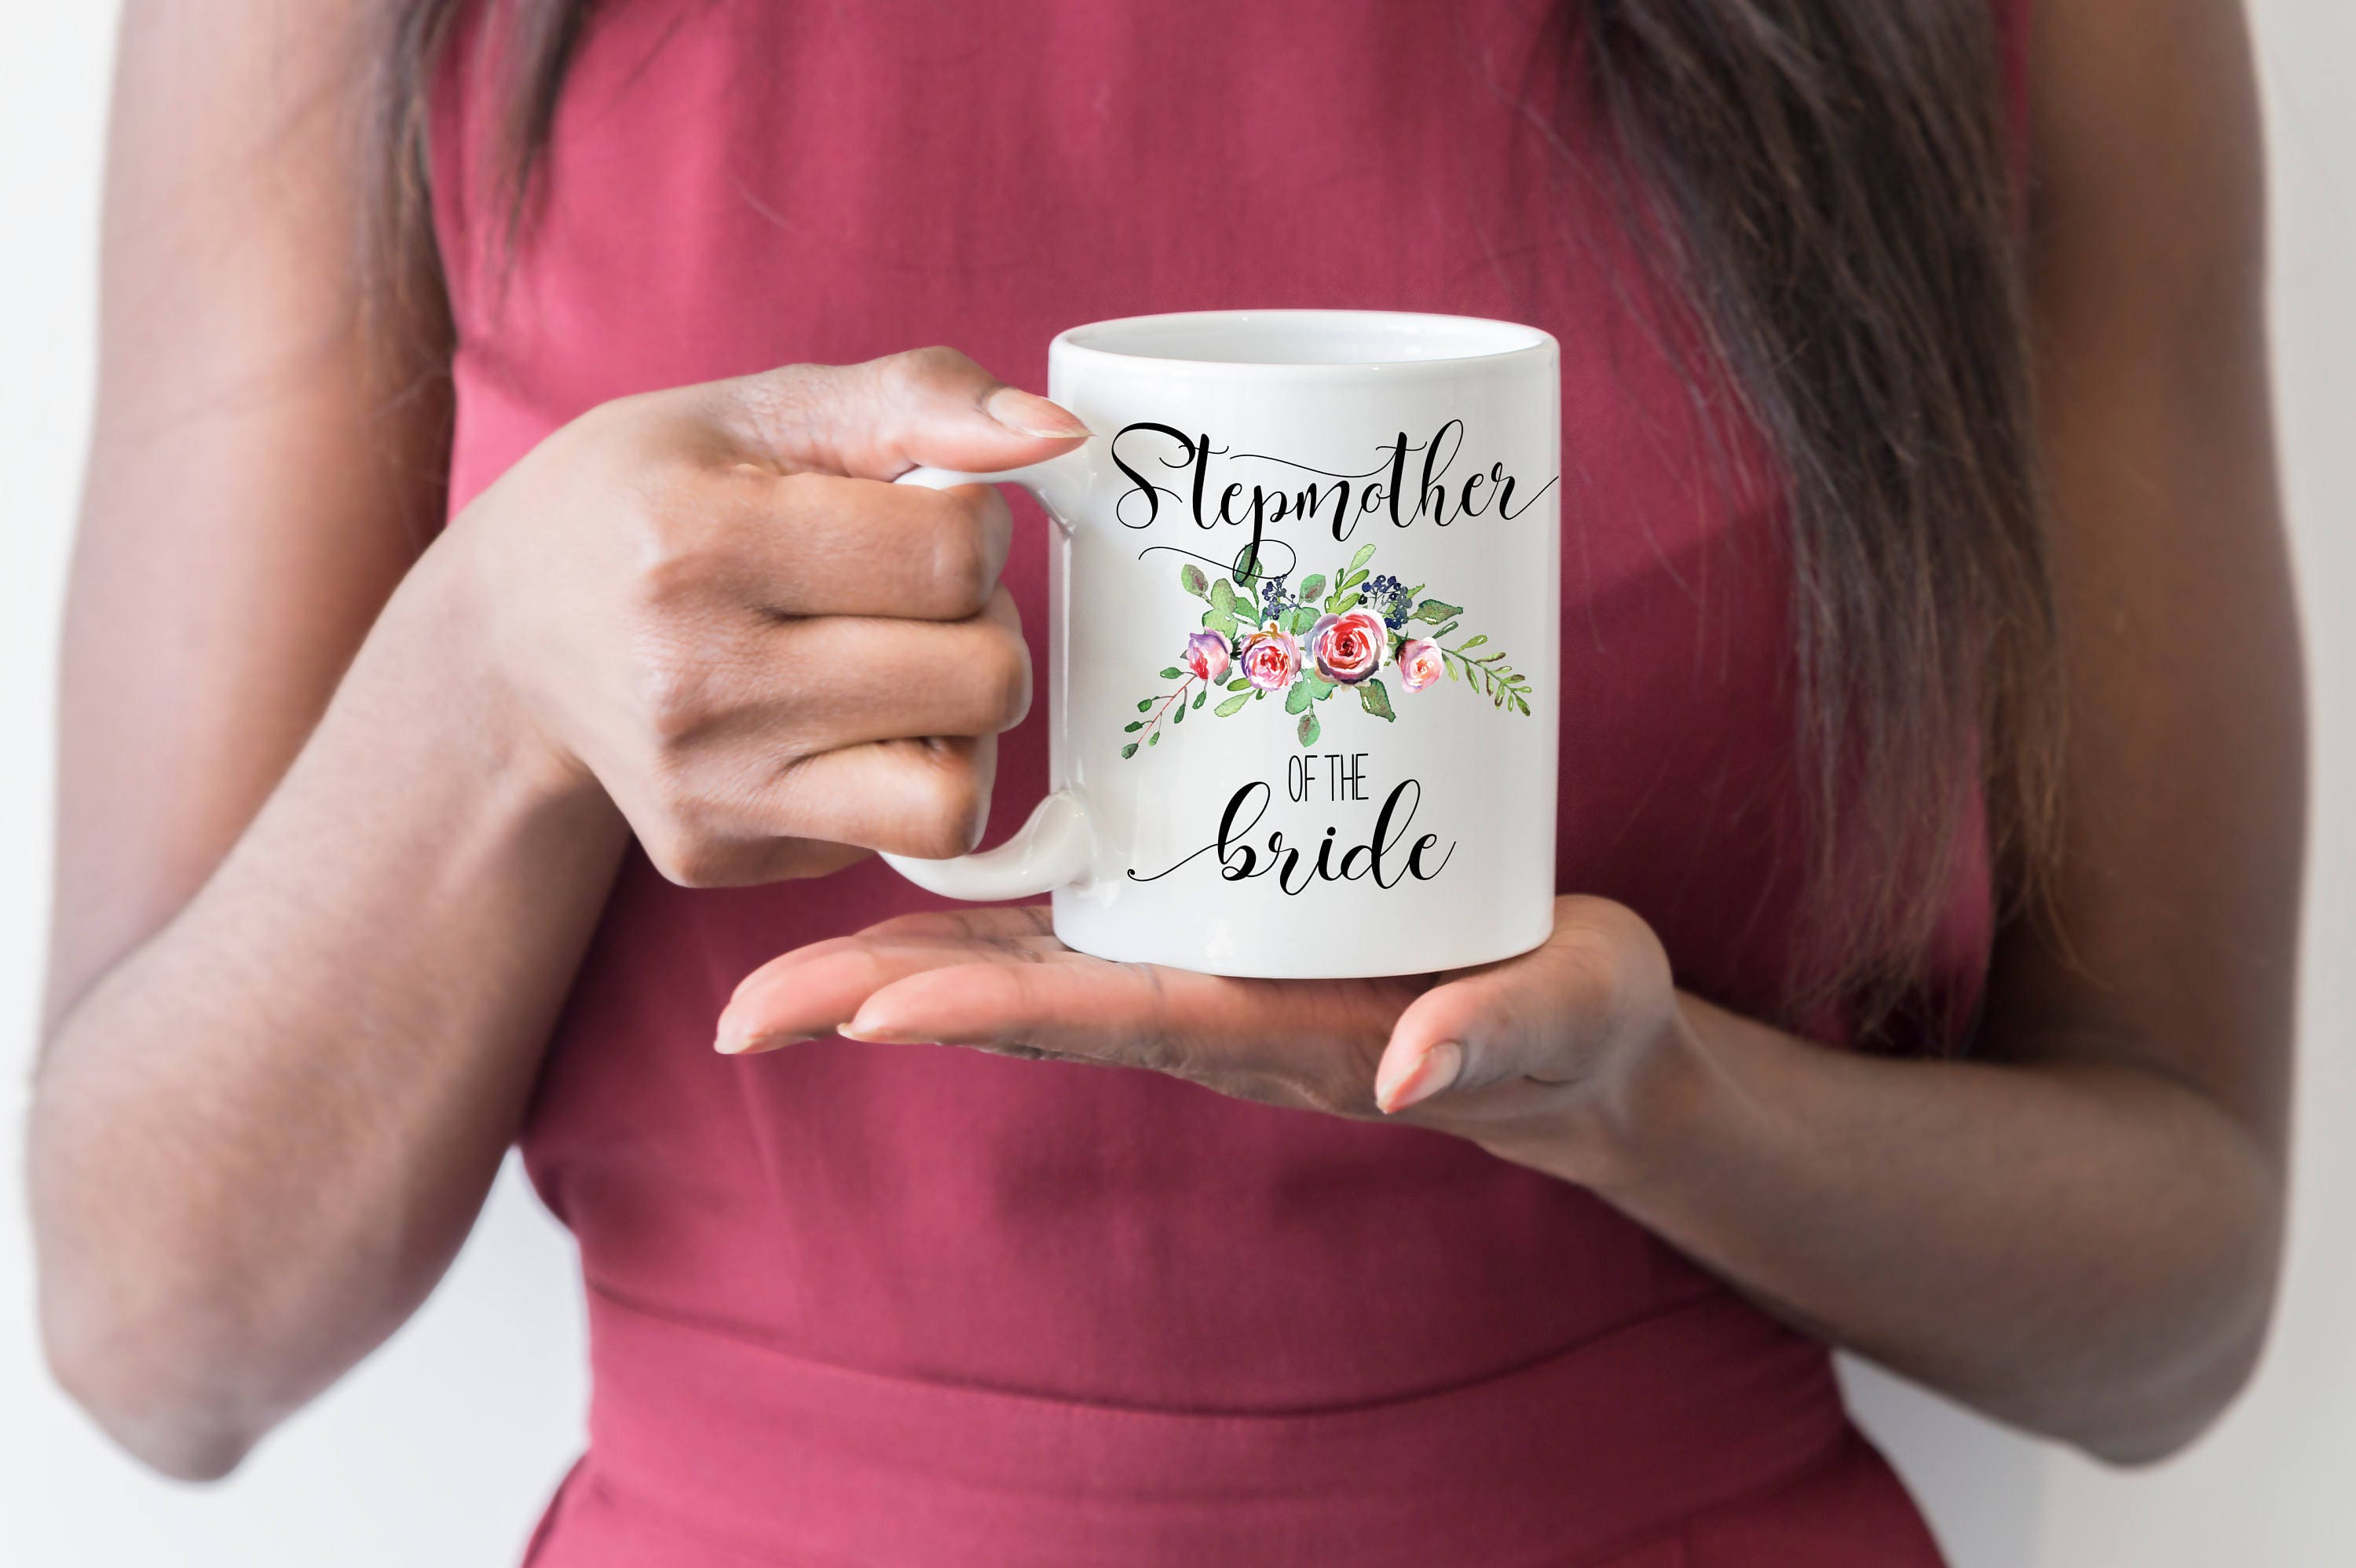 Wedding Gift For Dad And Stepmom: Stepmother Of The Bride Mug Stepmother Wedding Gift Stepmom